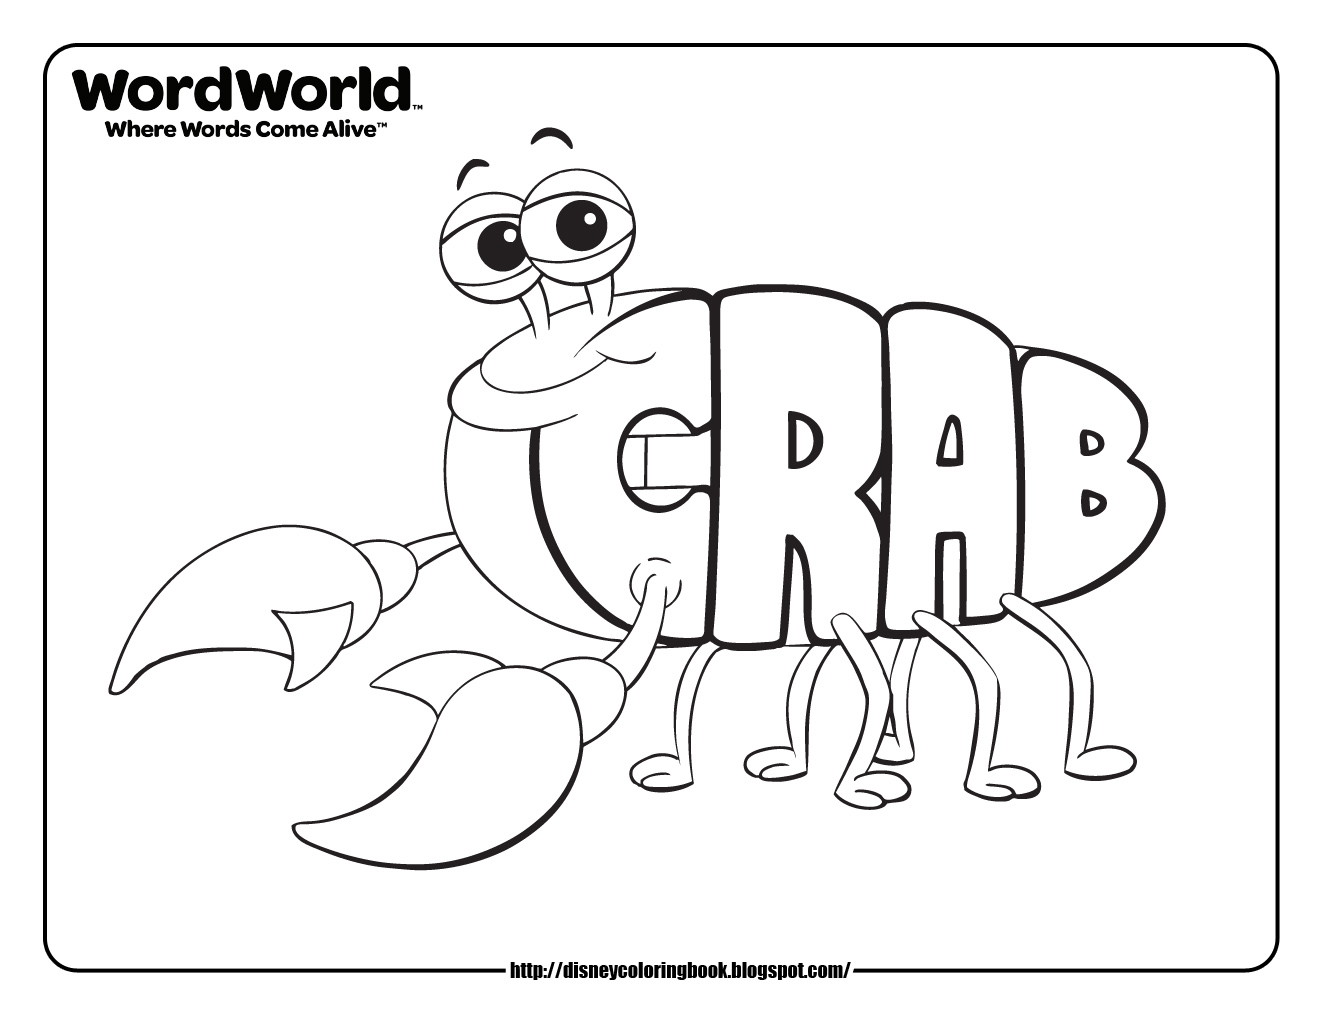 disney coloring pages and sheets for kids wordworld 2 free